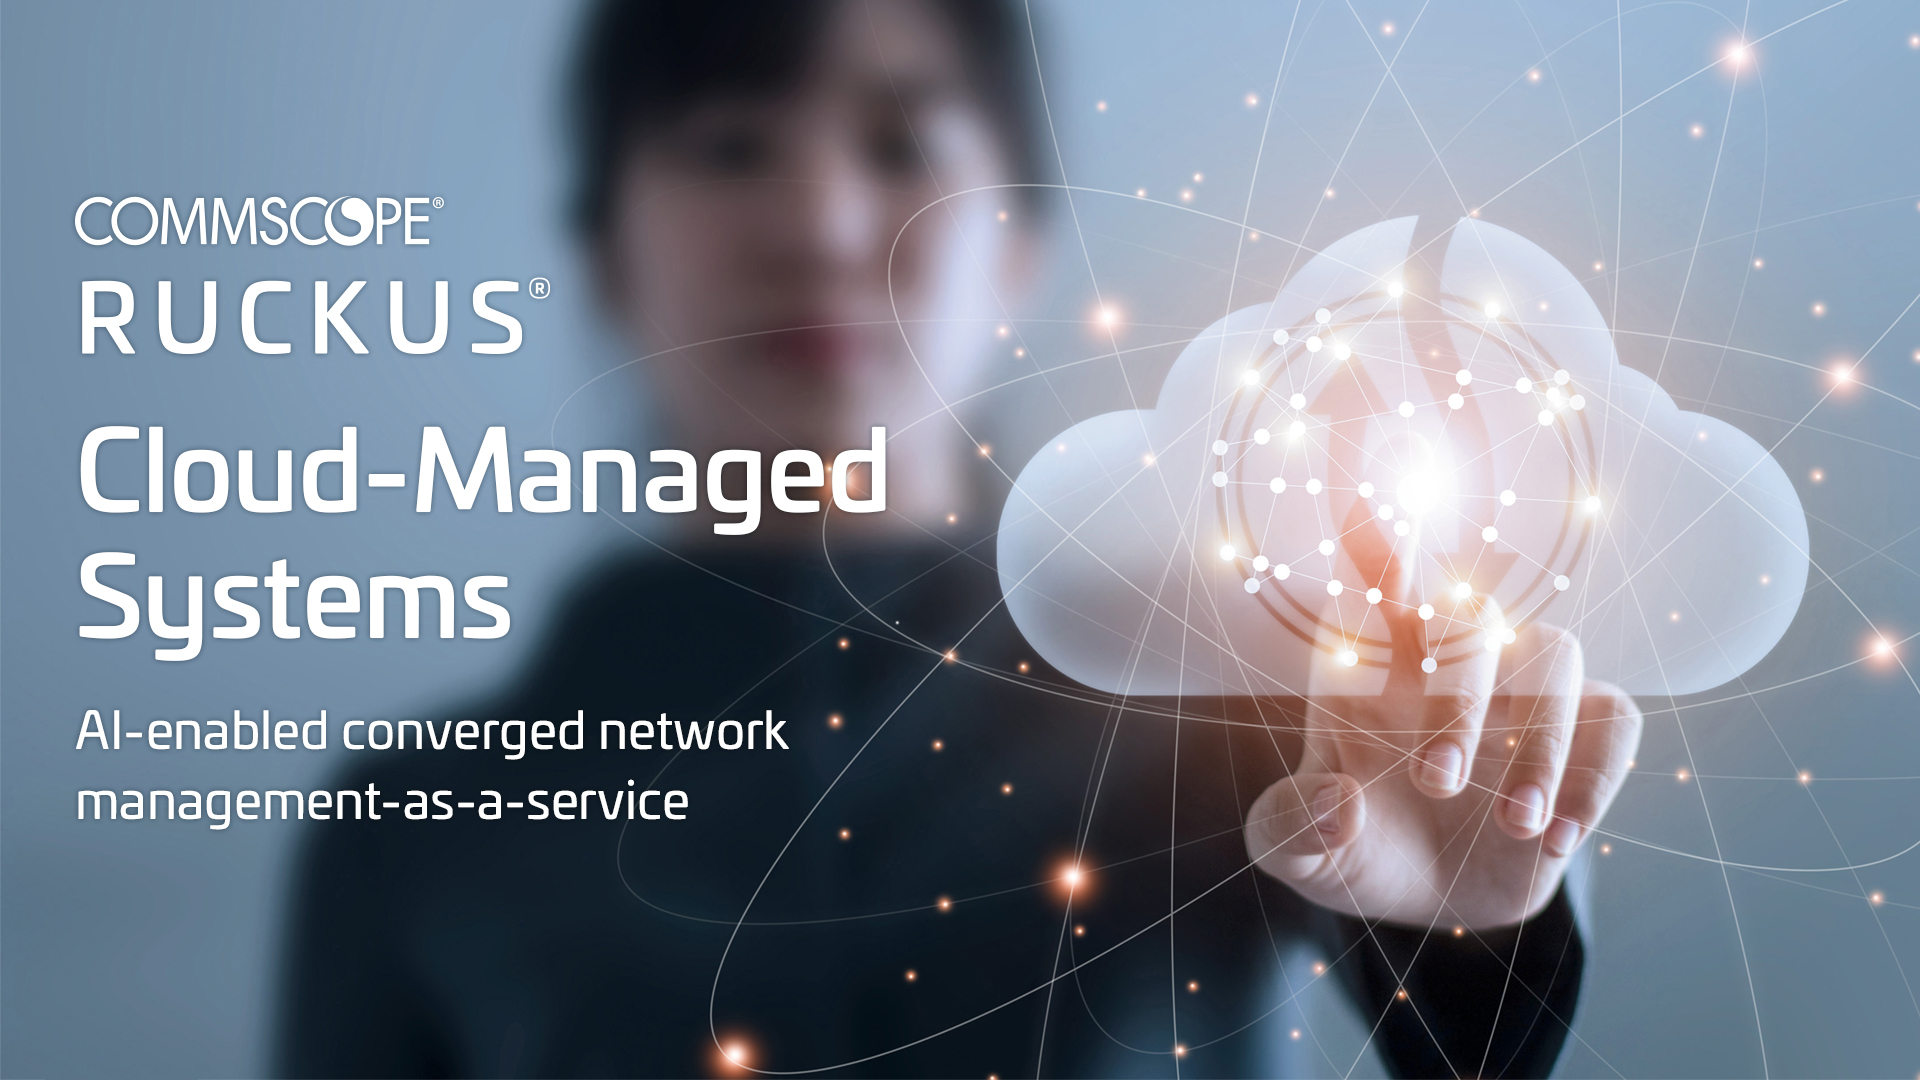 Ruckus Cloud-Managed Systems